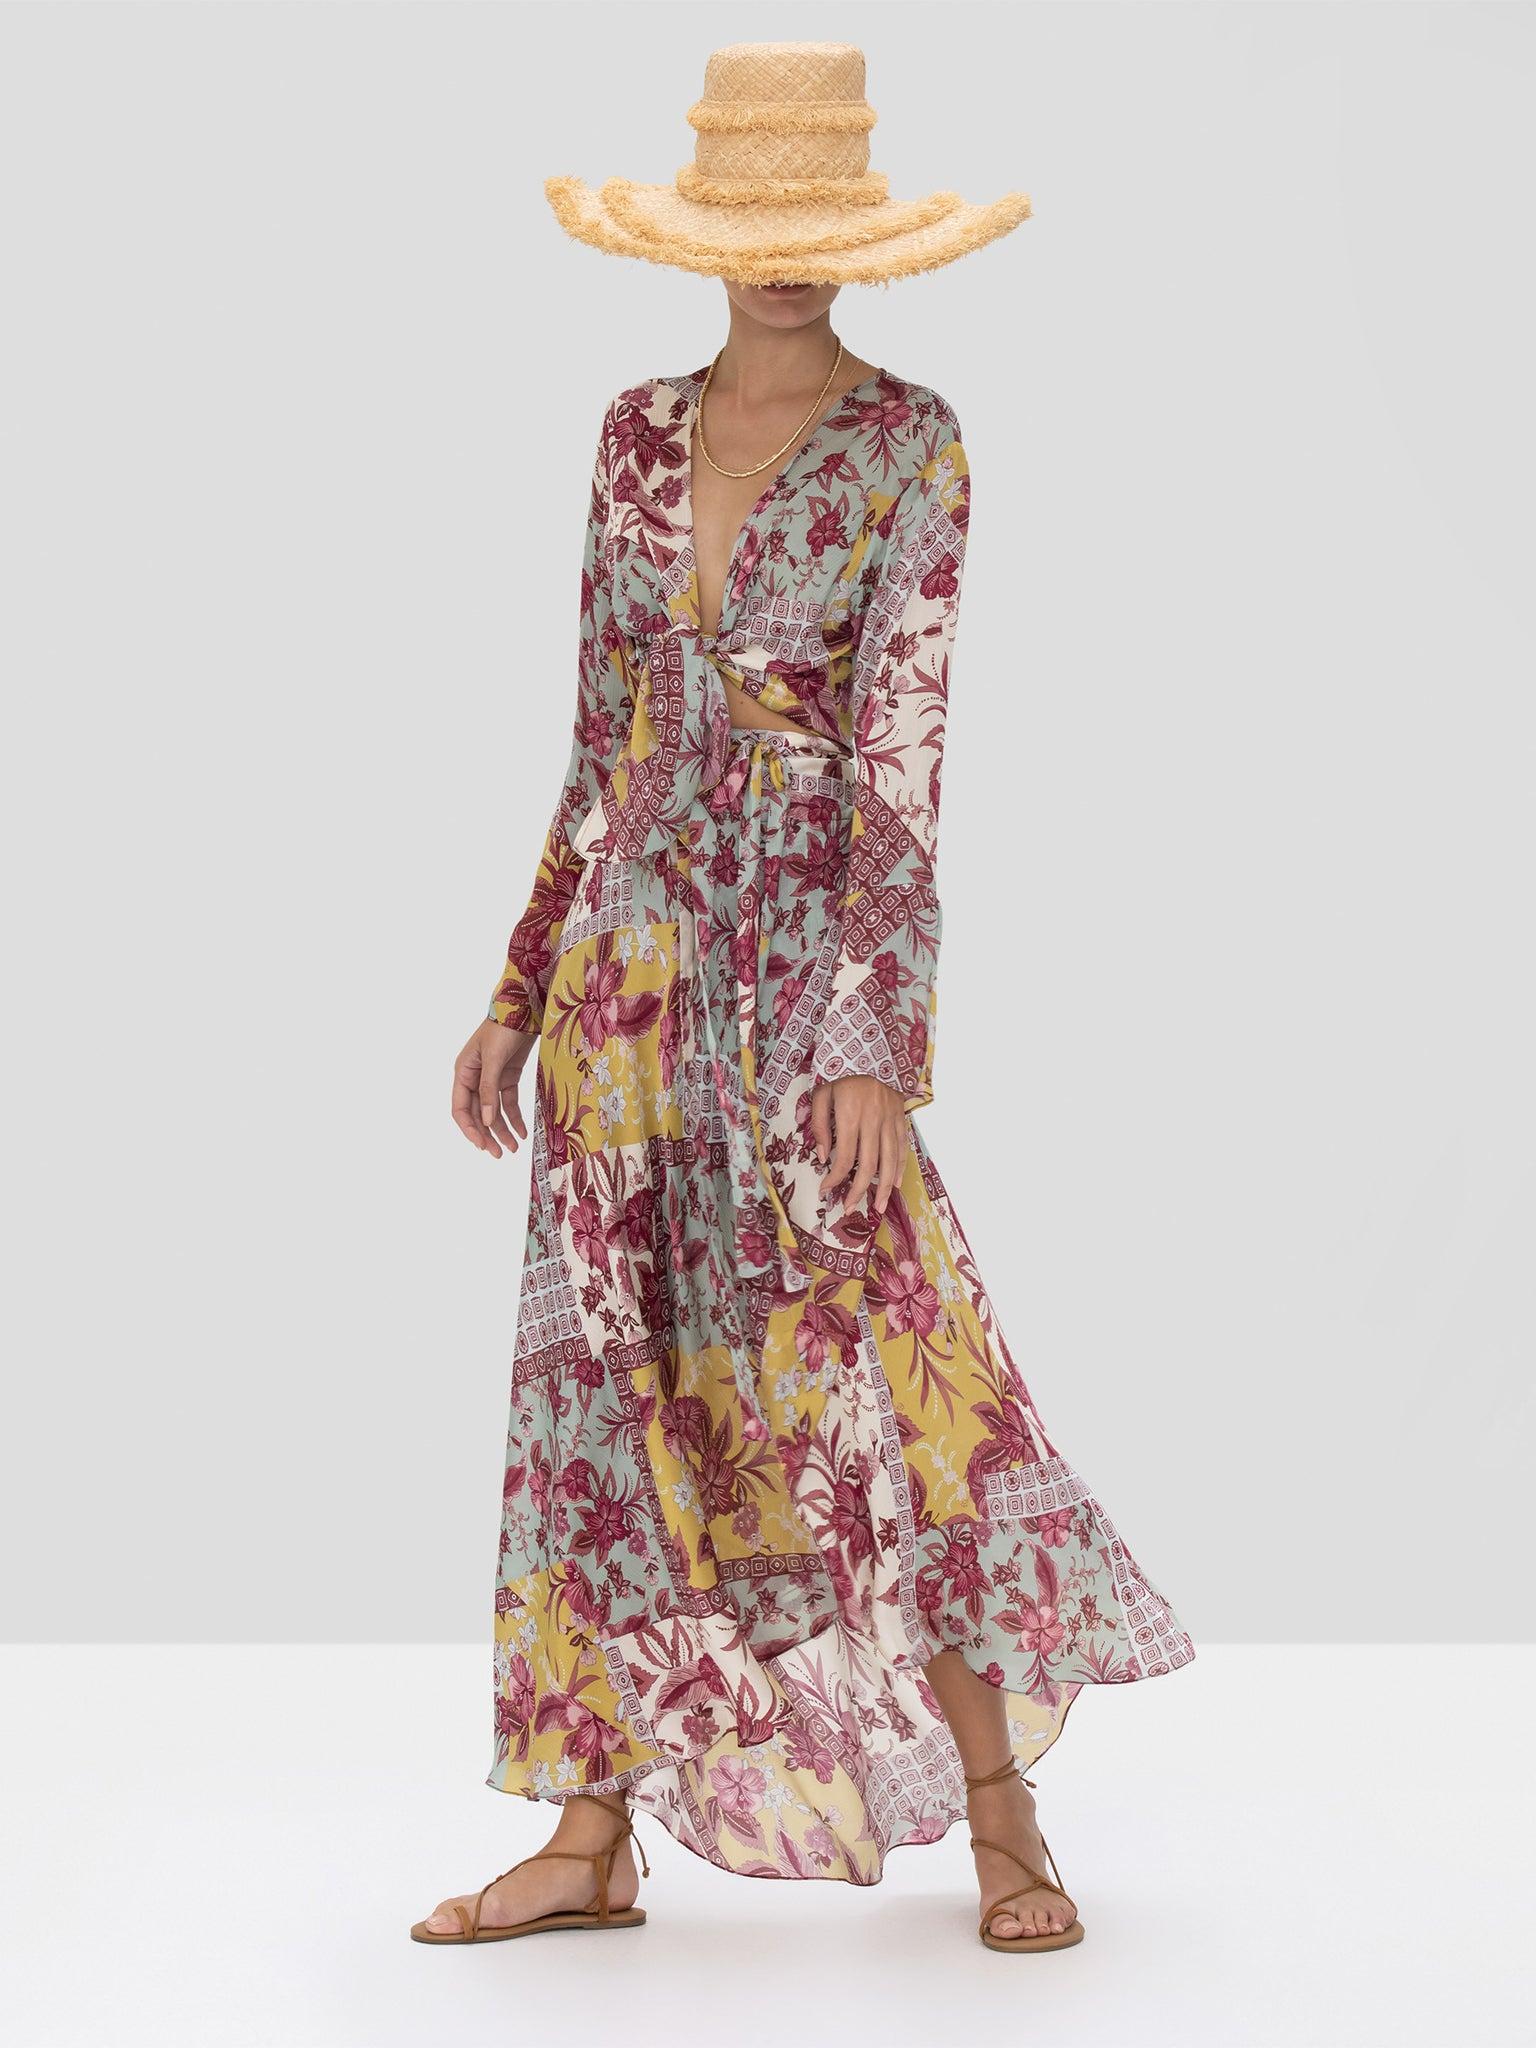 Alexis Kalindi Top and Elora Skirt in Berry Foulard from the Spring Summer 2020 Collection